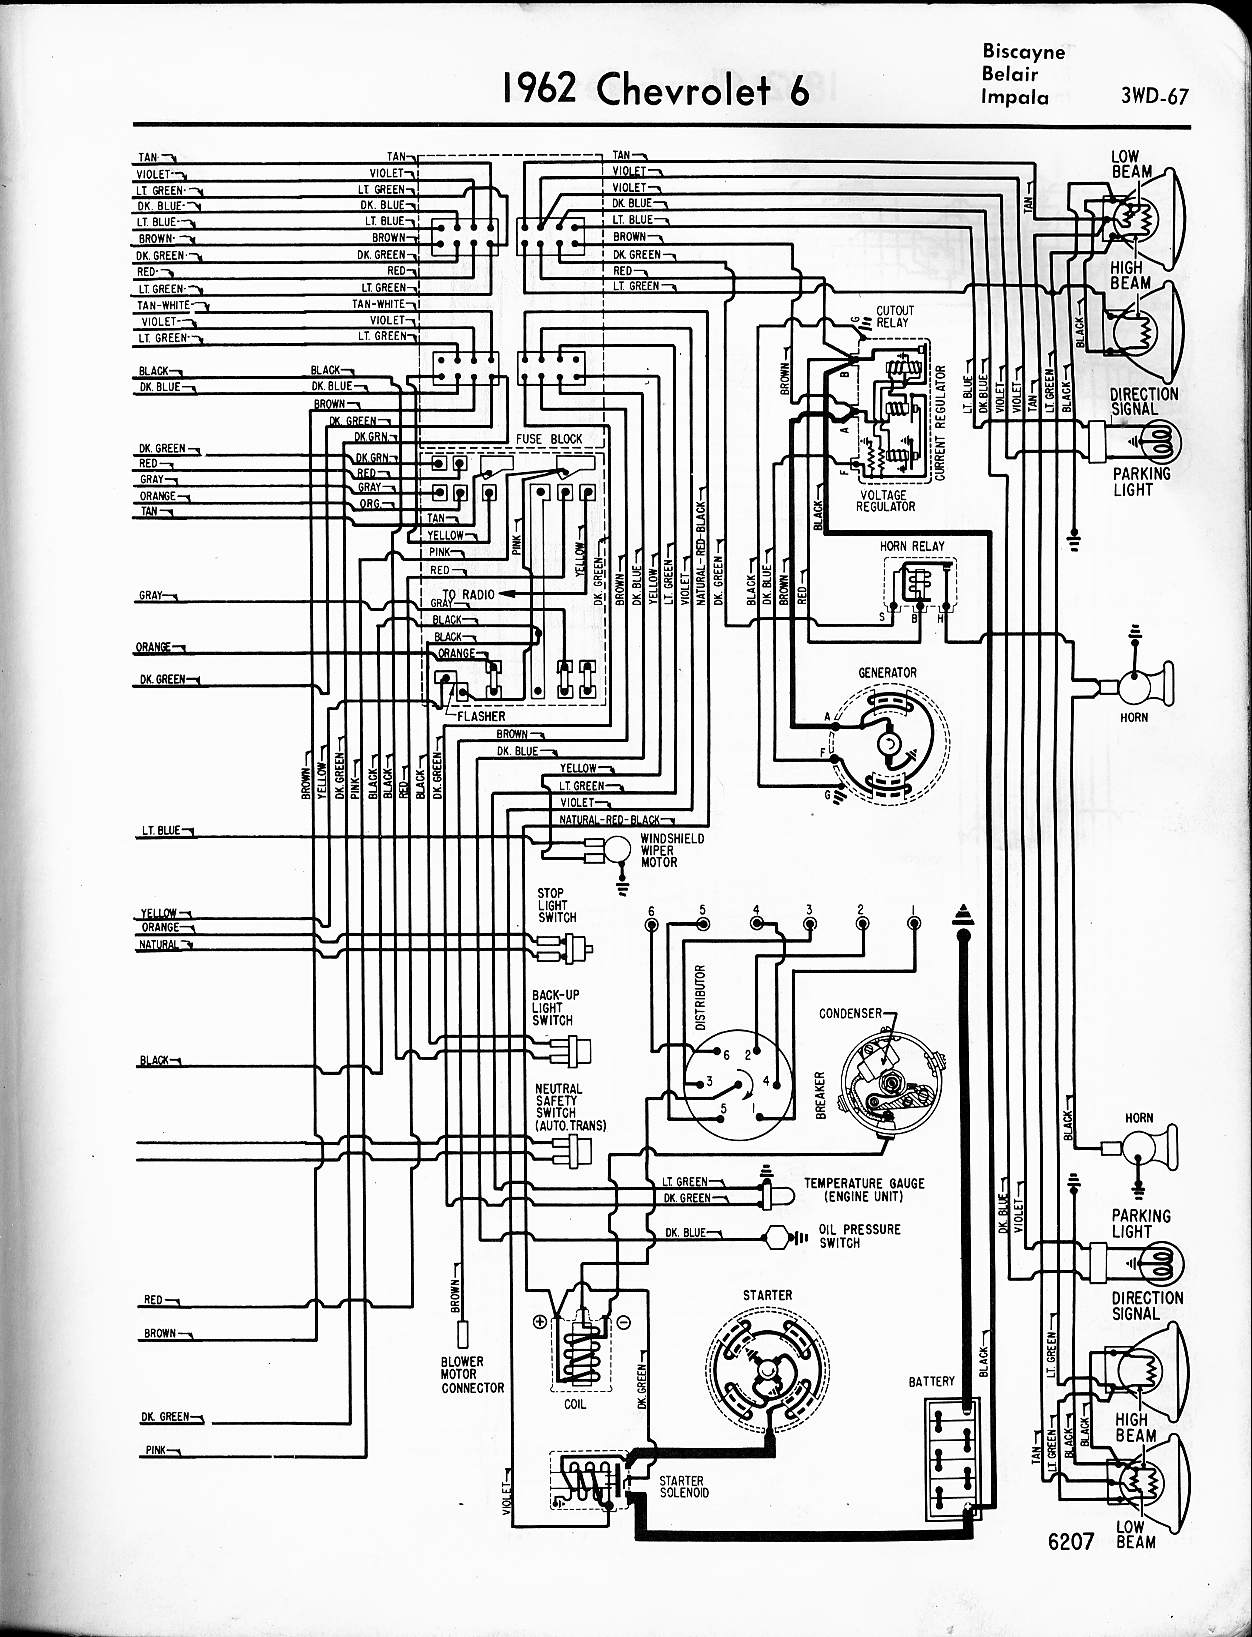 62 Impala Wiring Diagram Archive Of Automotive 1967 Dash 57 65 Chevy Diagrams Rh Oldcarmanualproject Com